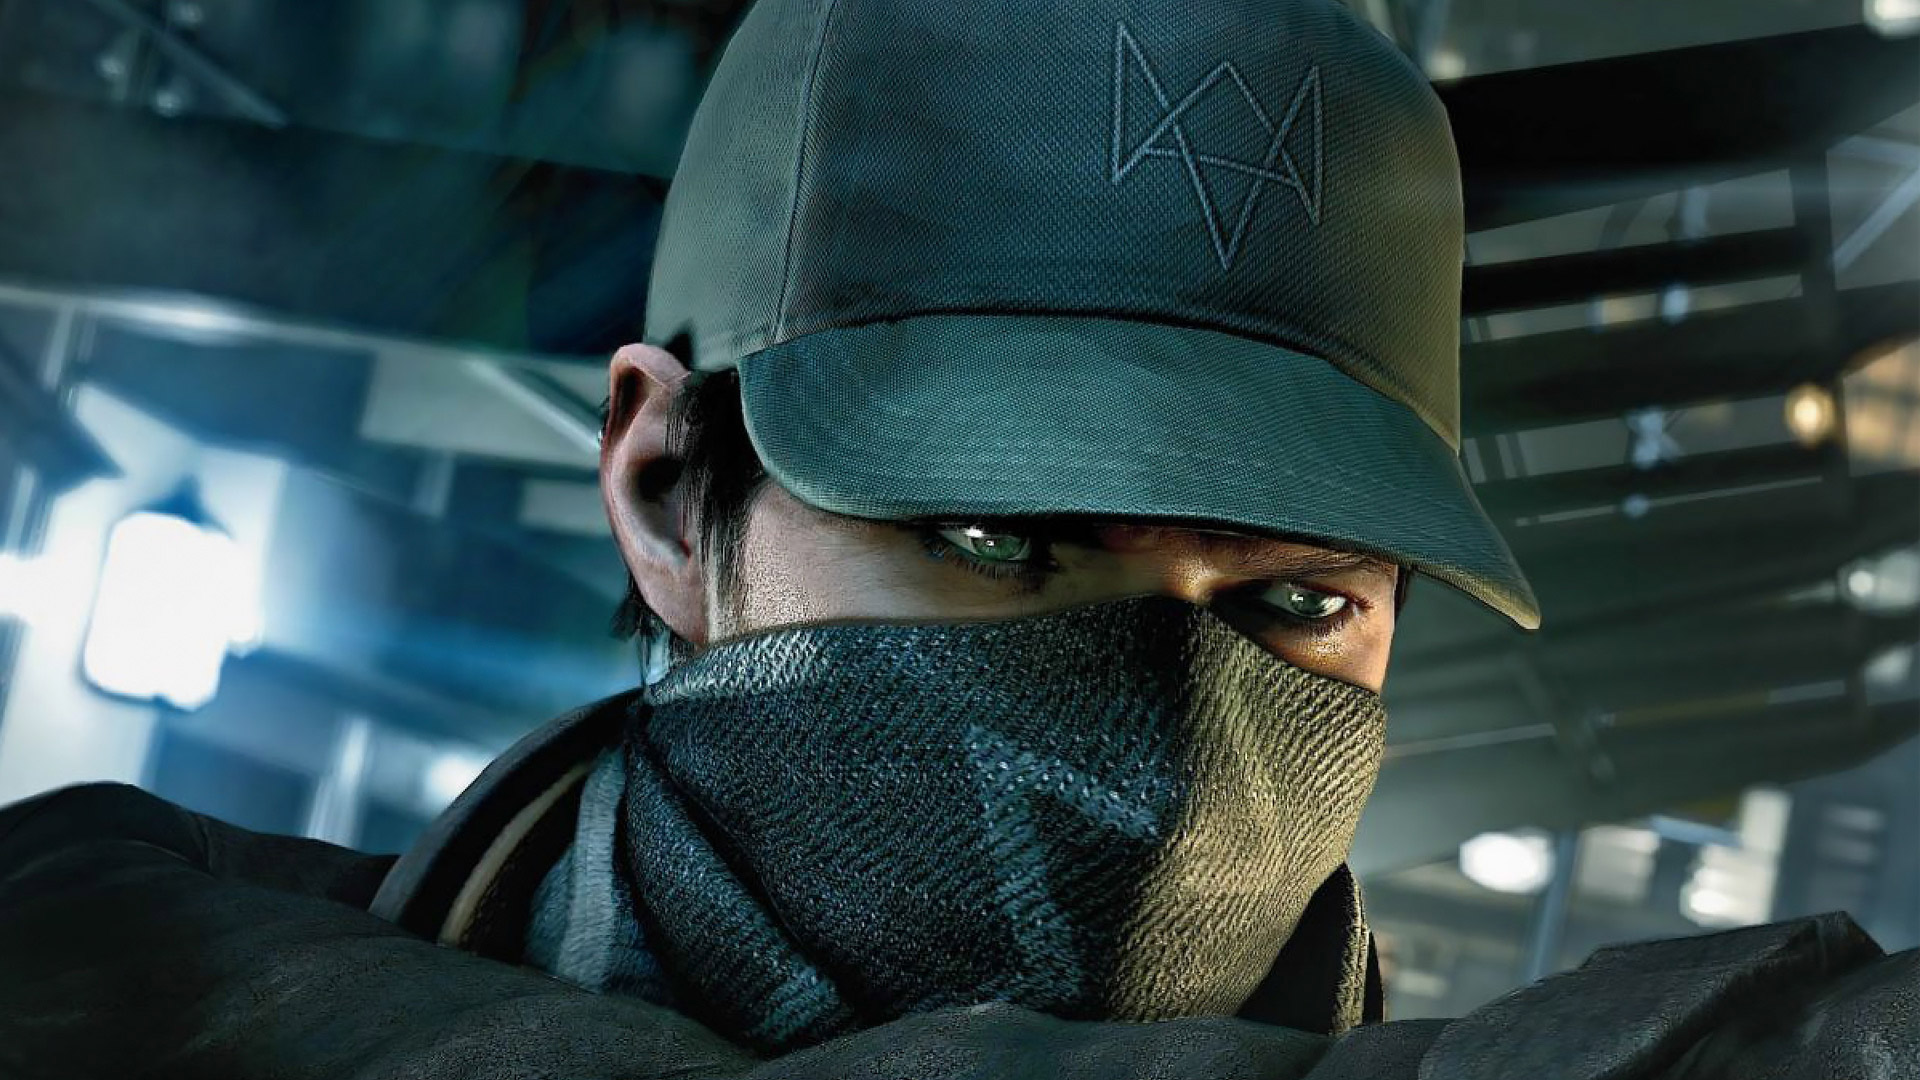 Download wallpaper 1920x1080 aiden pearce watch dogs games full hd aiden pearce watch dogs games voltagebd Images